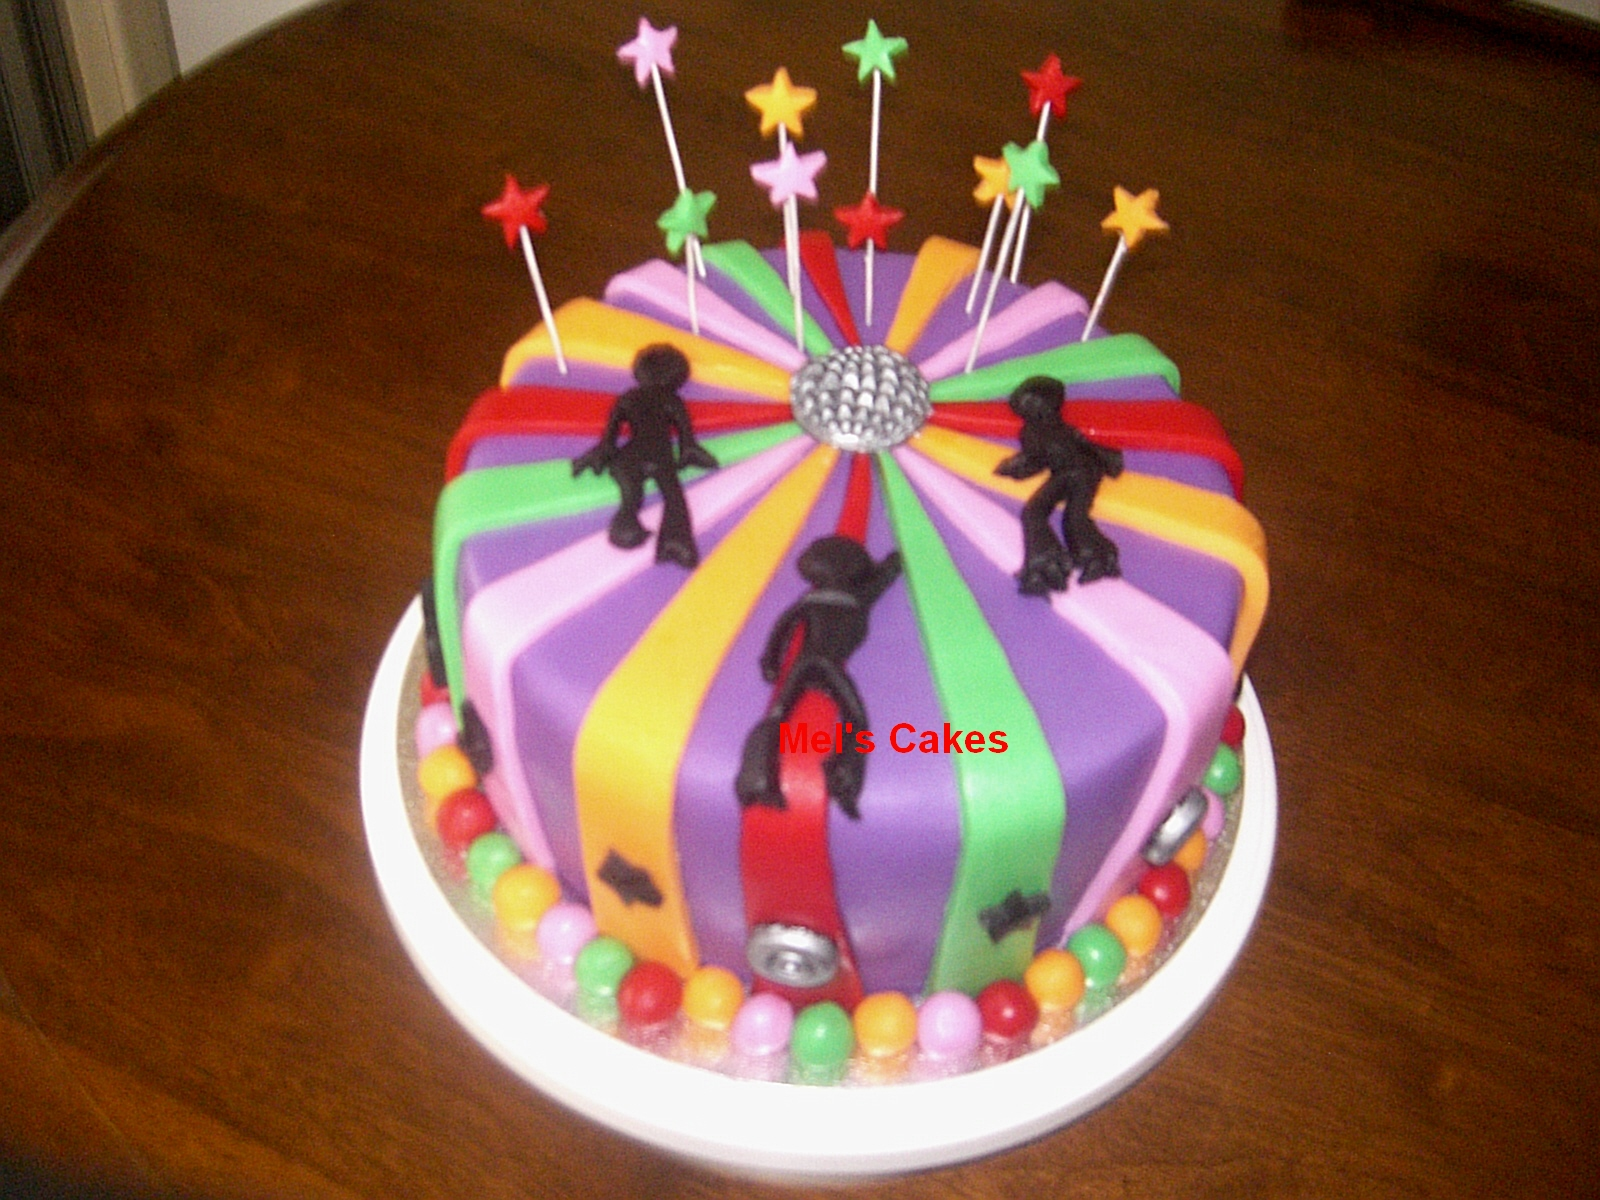 Welcome To Mels Cakes Disco Birthday Cakes